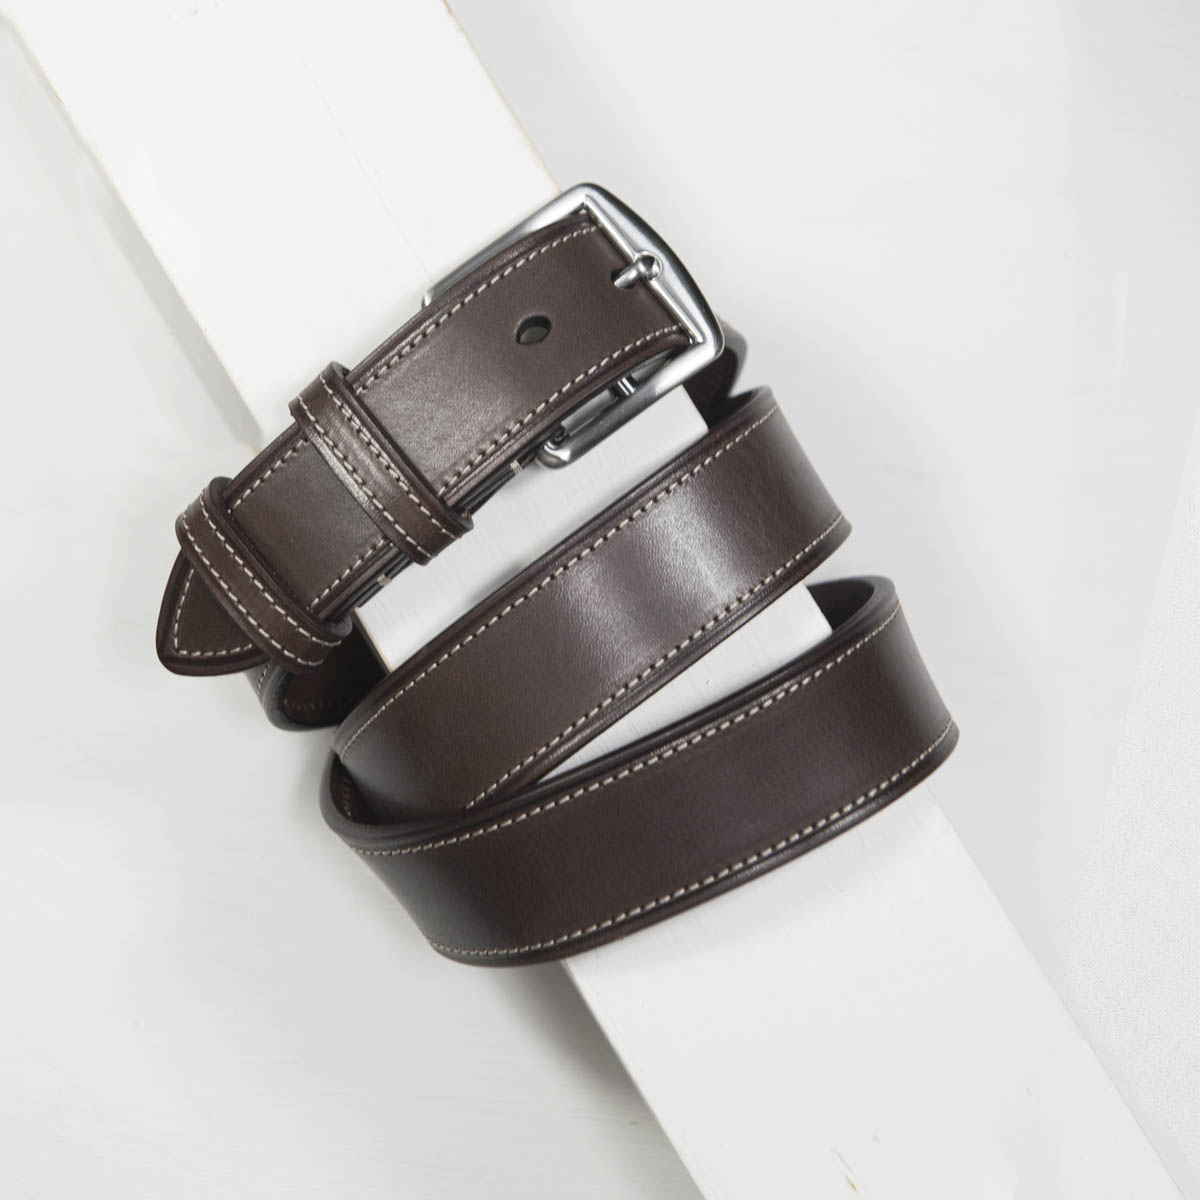 3,5 cm CLASSIC BRIDLE STITCHED LEATHER BROWN BELT